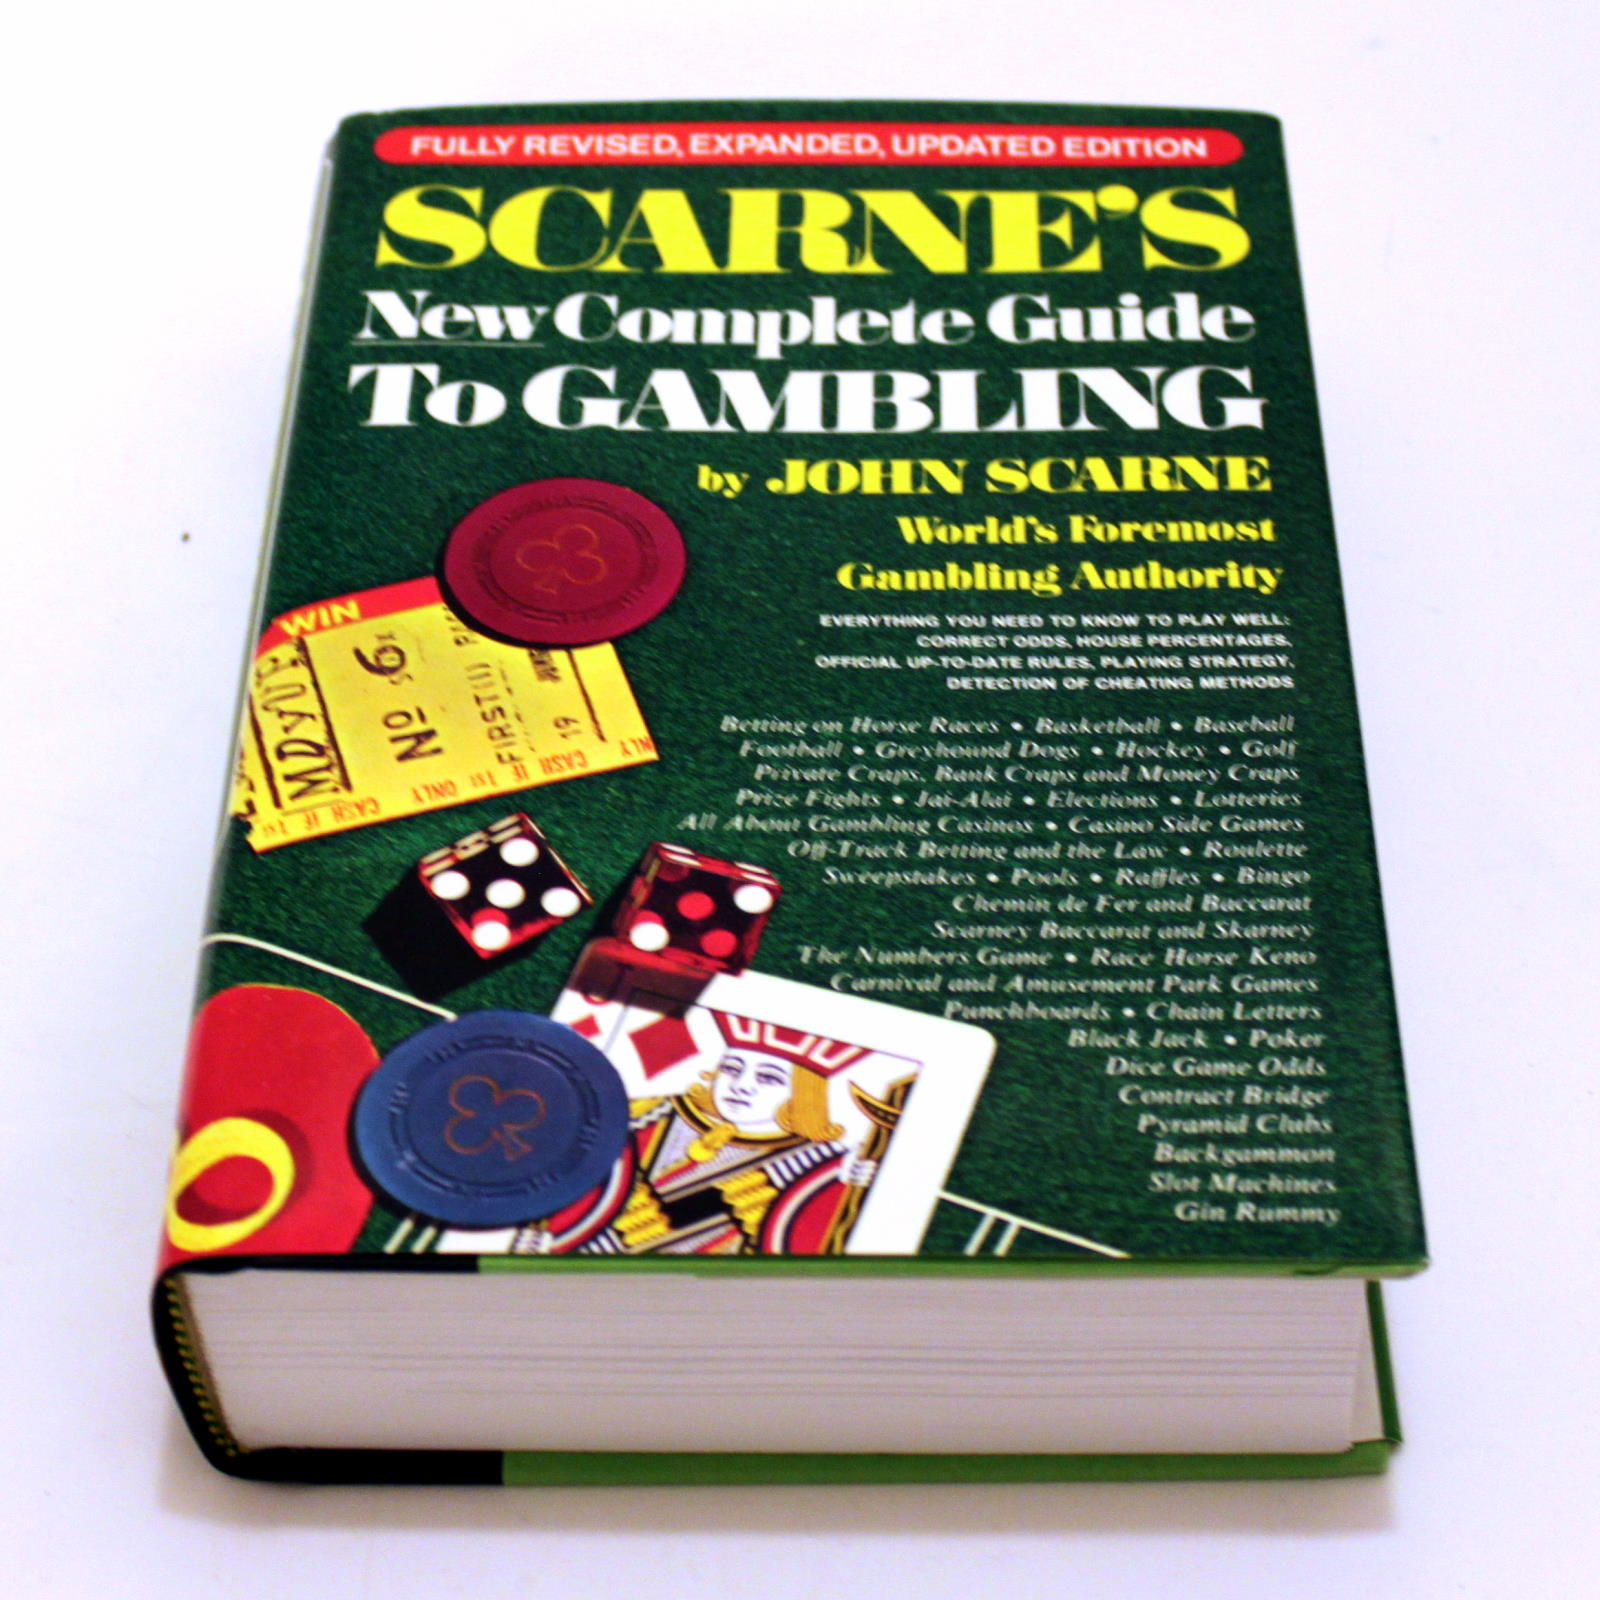 Scarne's New Complete Guide To Gambling by John Scarne